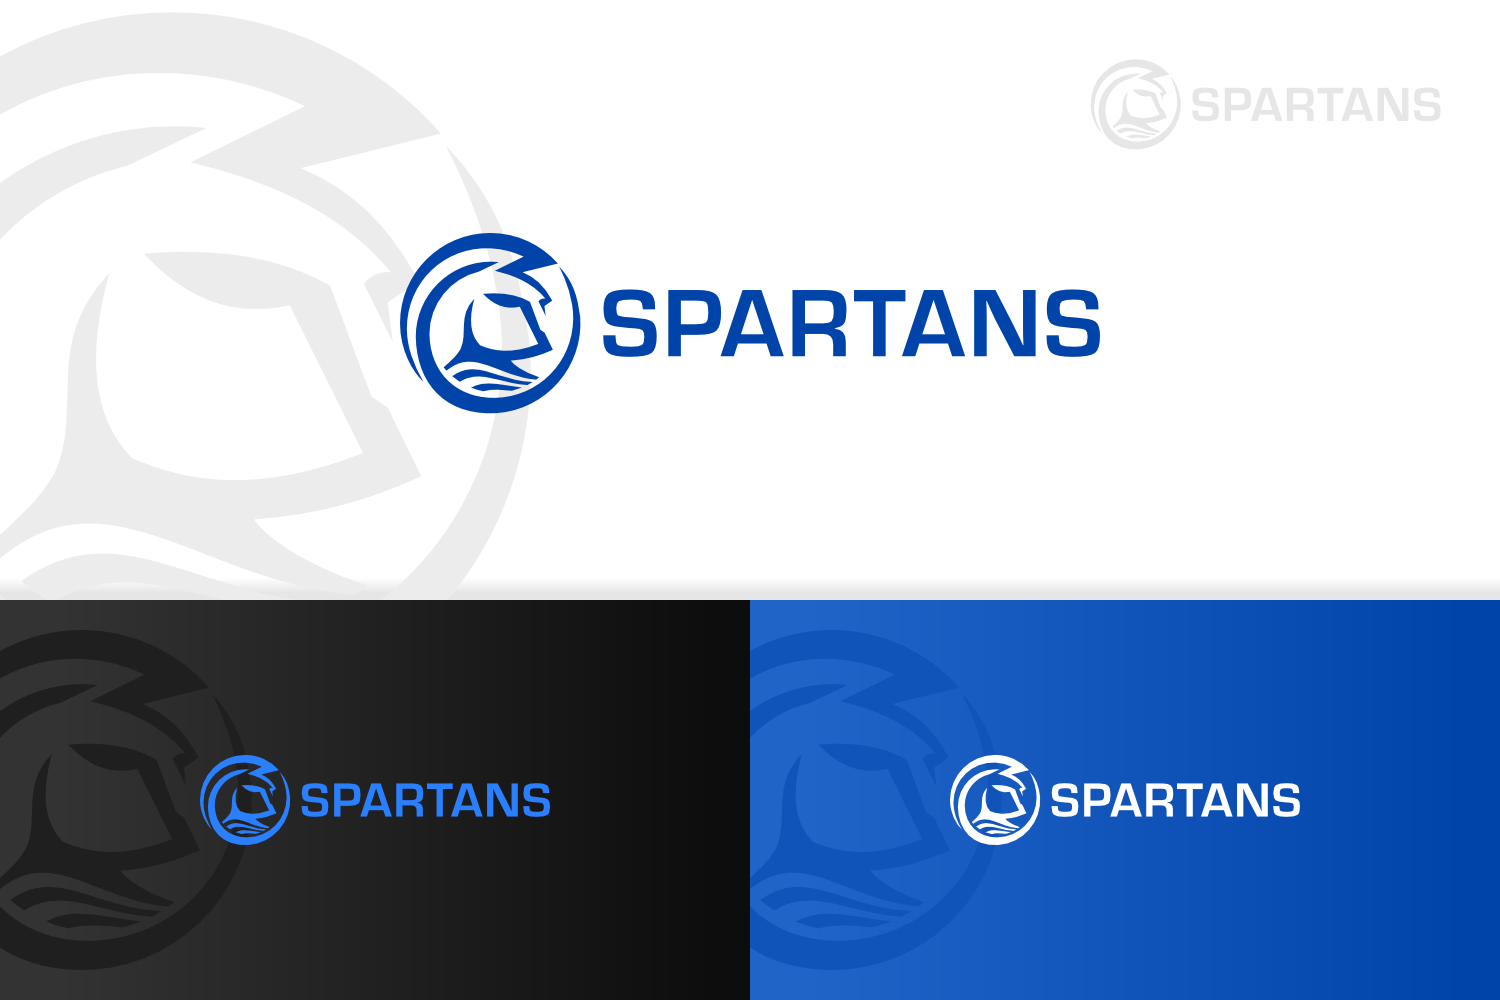 Create the next logo for Spartans